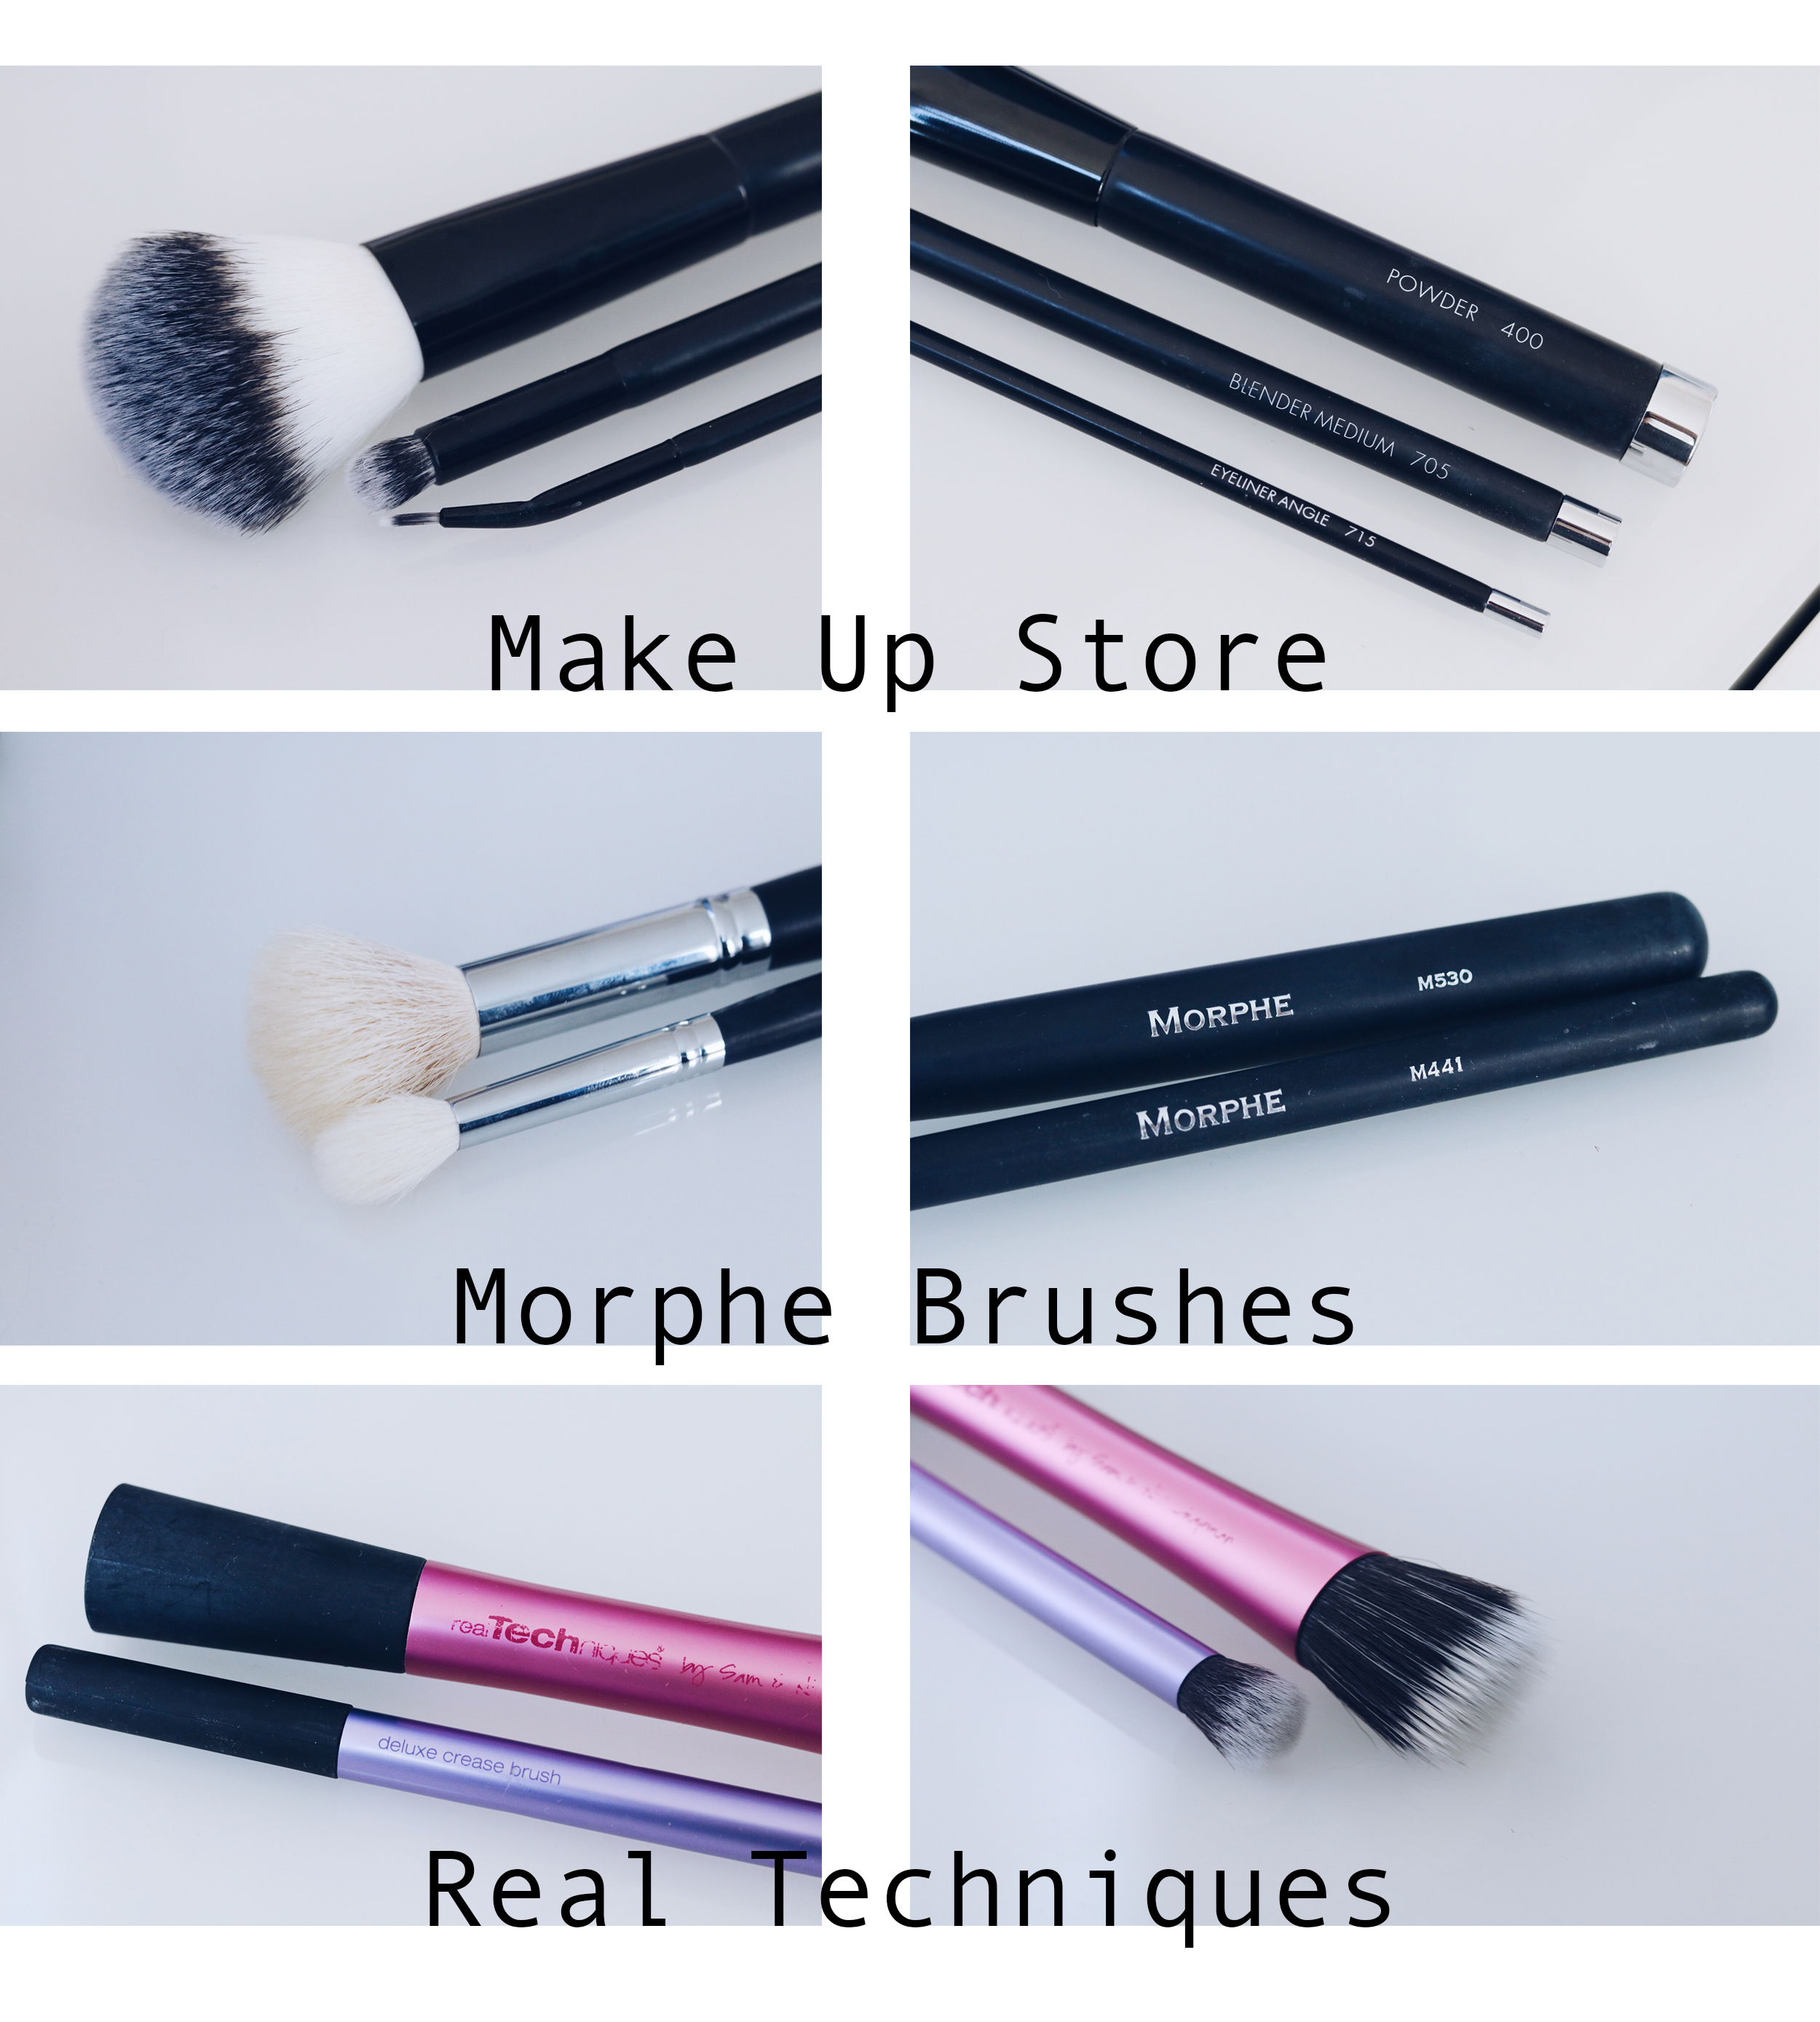 Mina absoluta favoriter bland sminkborstar MUS Make up store Morphe Real Techniques djurtester cruelty free CF amandahans skönhetsblogg skönhetsbloggare